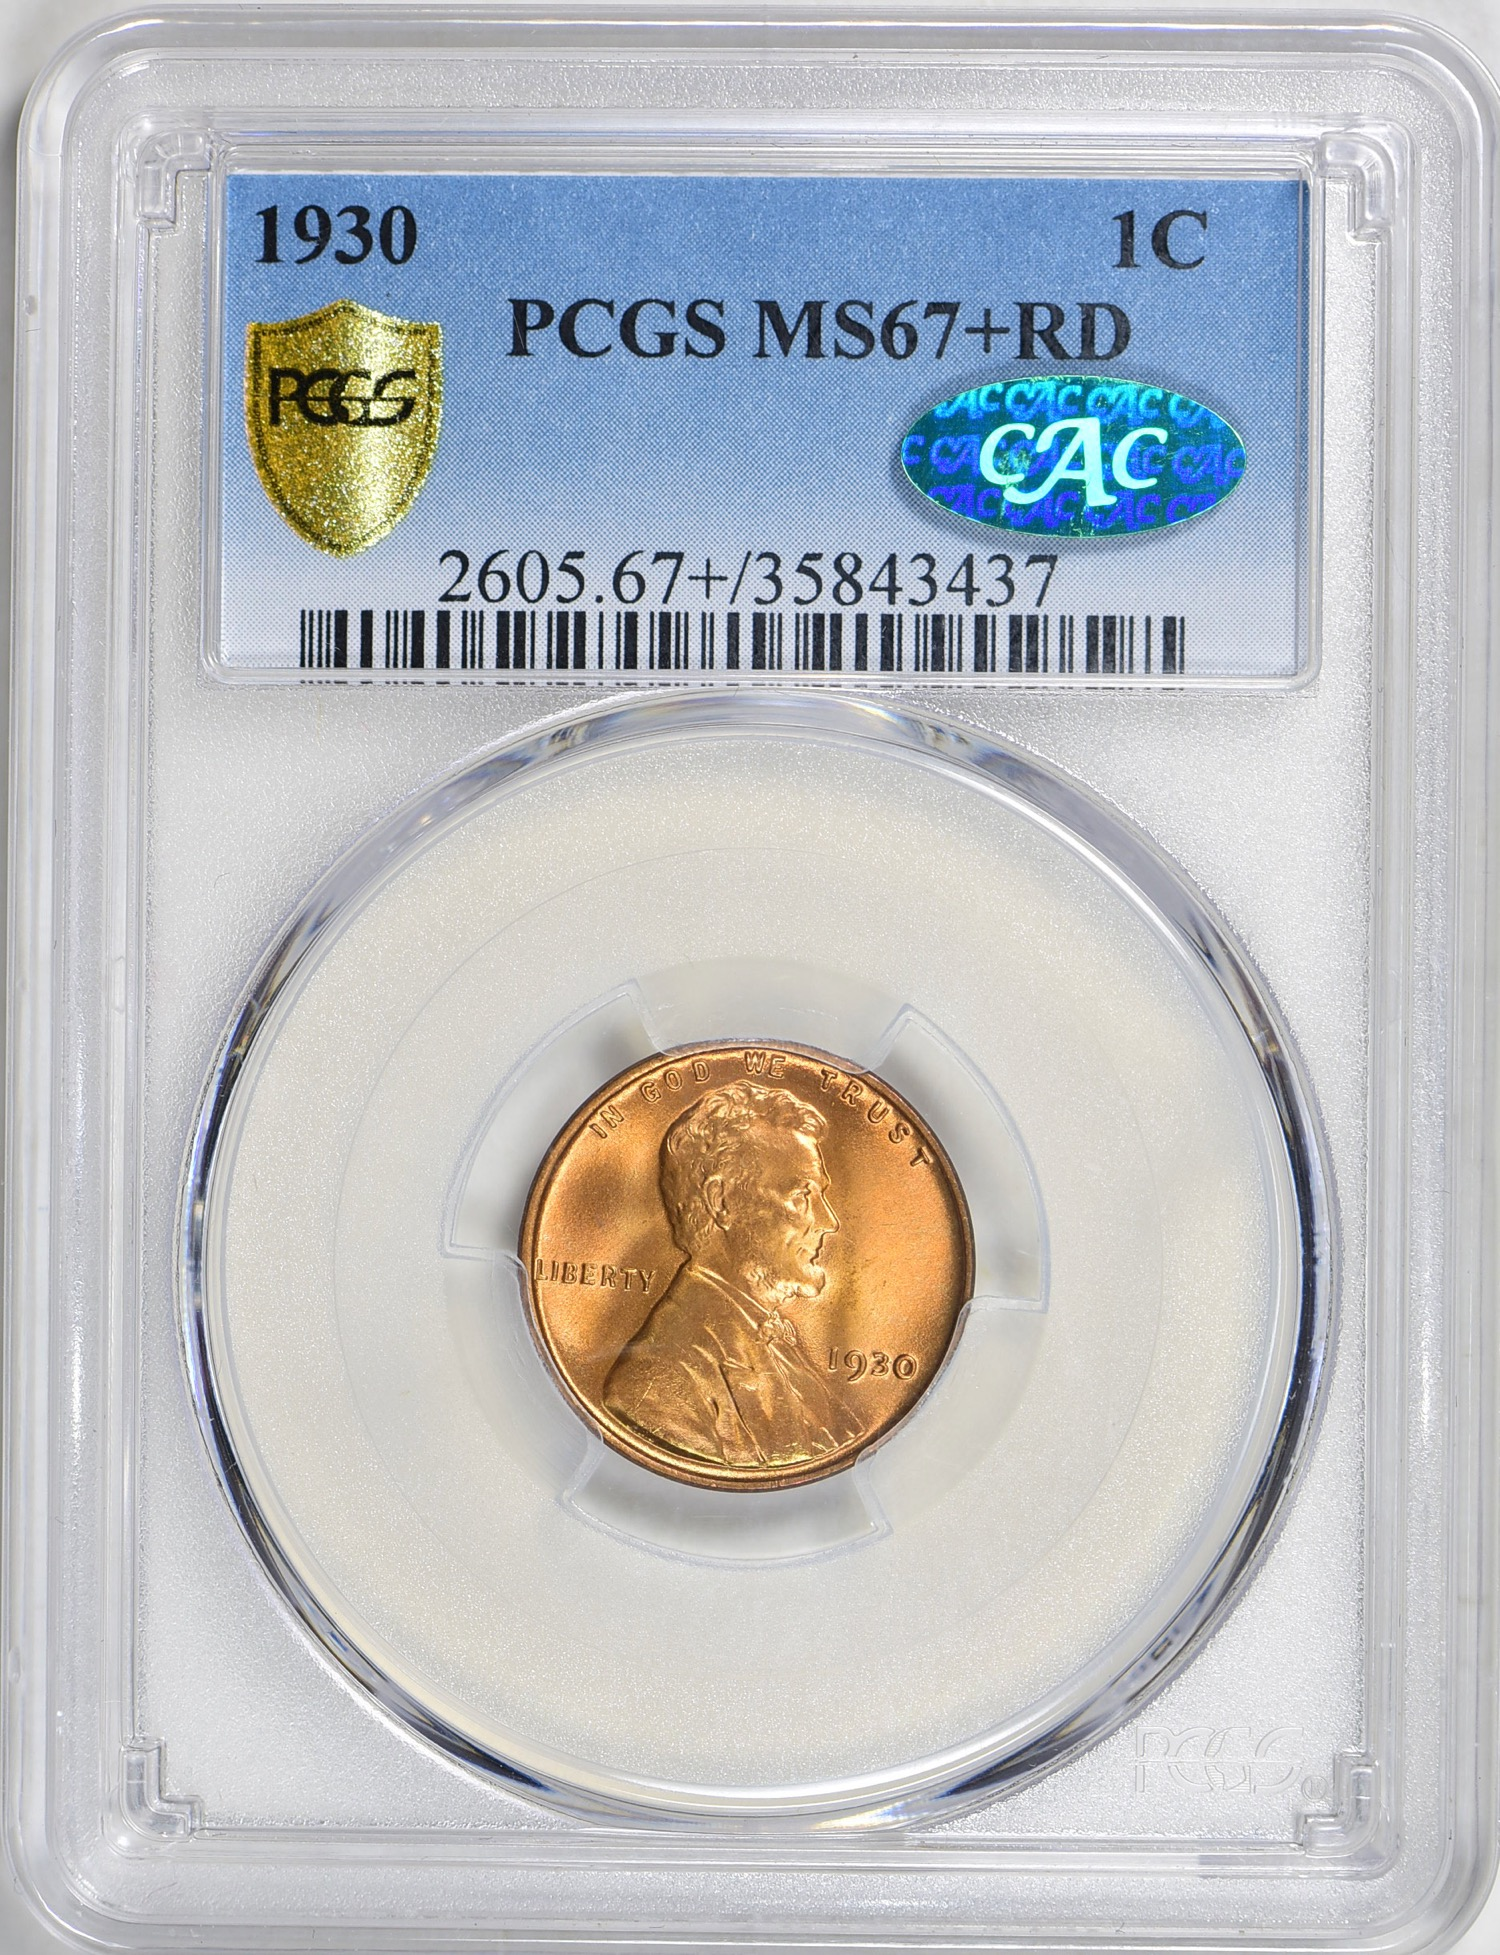 1930 MS67+RD CAC - Acquired GreatCollections 9/30/18. Replaces a MS67RD CAC. Note how many coins have a Gold Shield now - a likely result of the recent PCGS quarterly specials. I sent in two dozen coins for new holders and pictures.